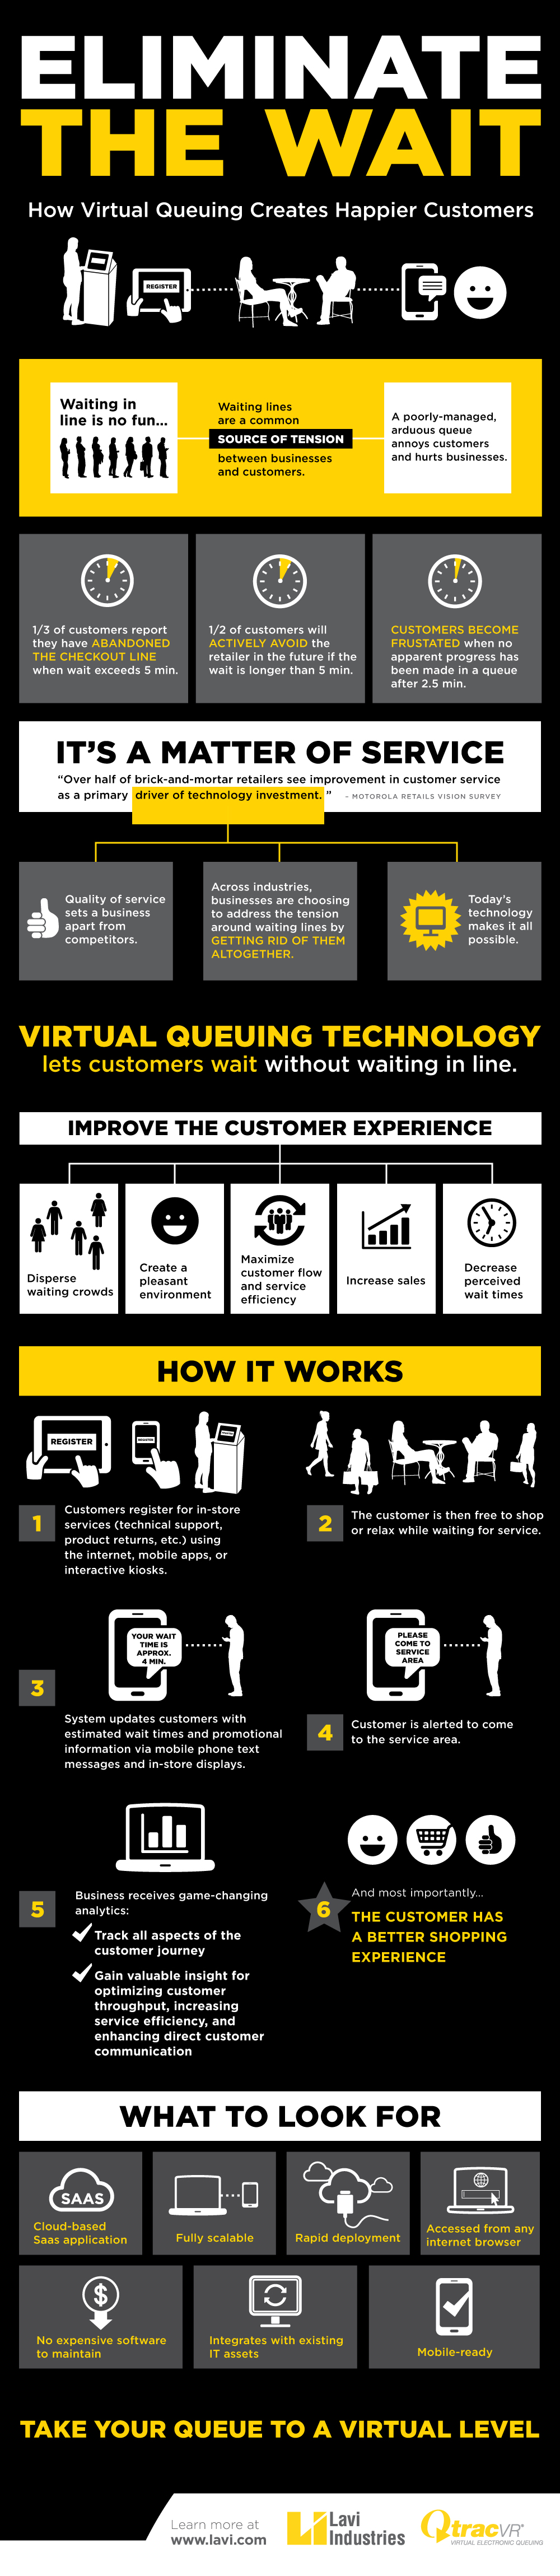 virtual queuing technology